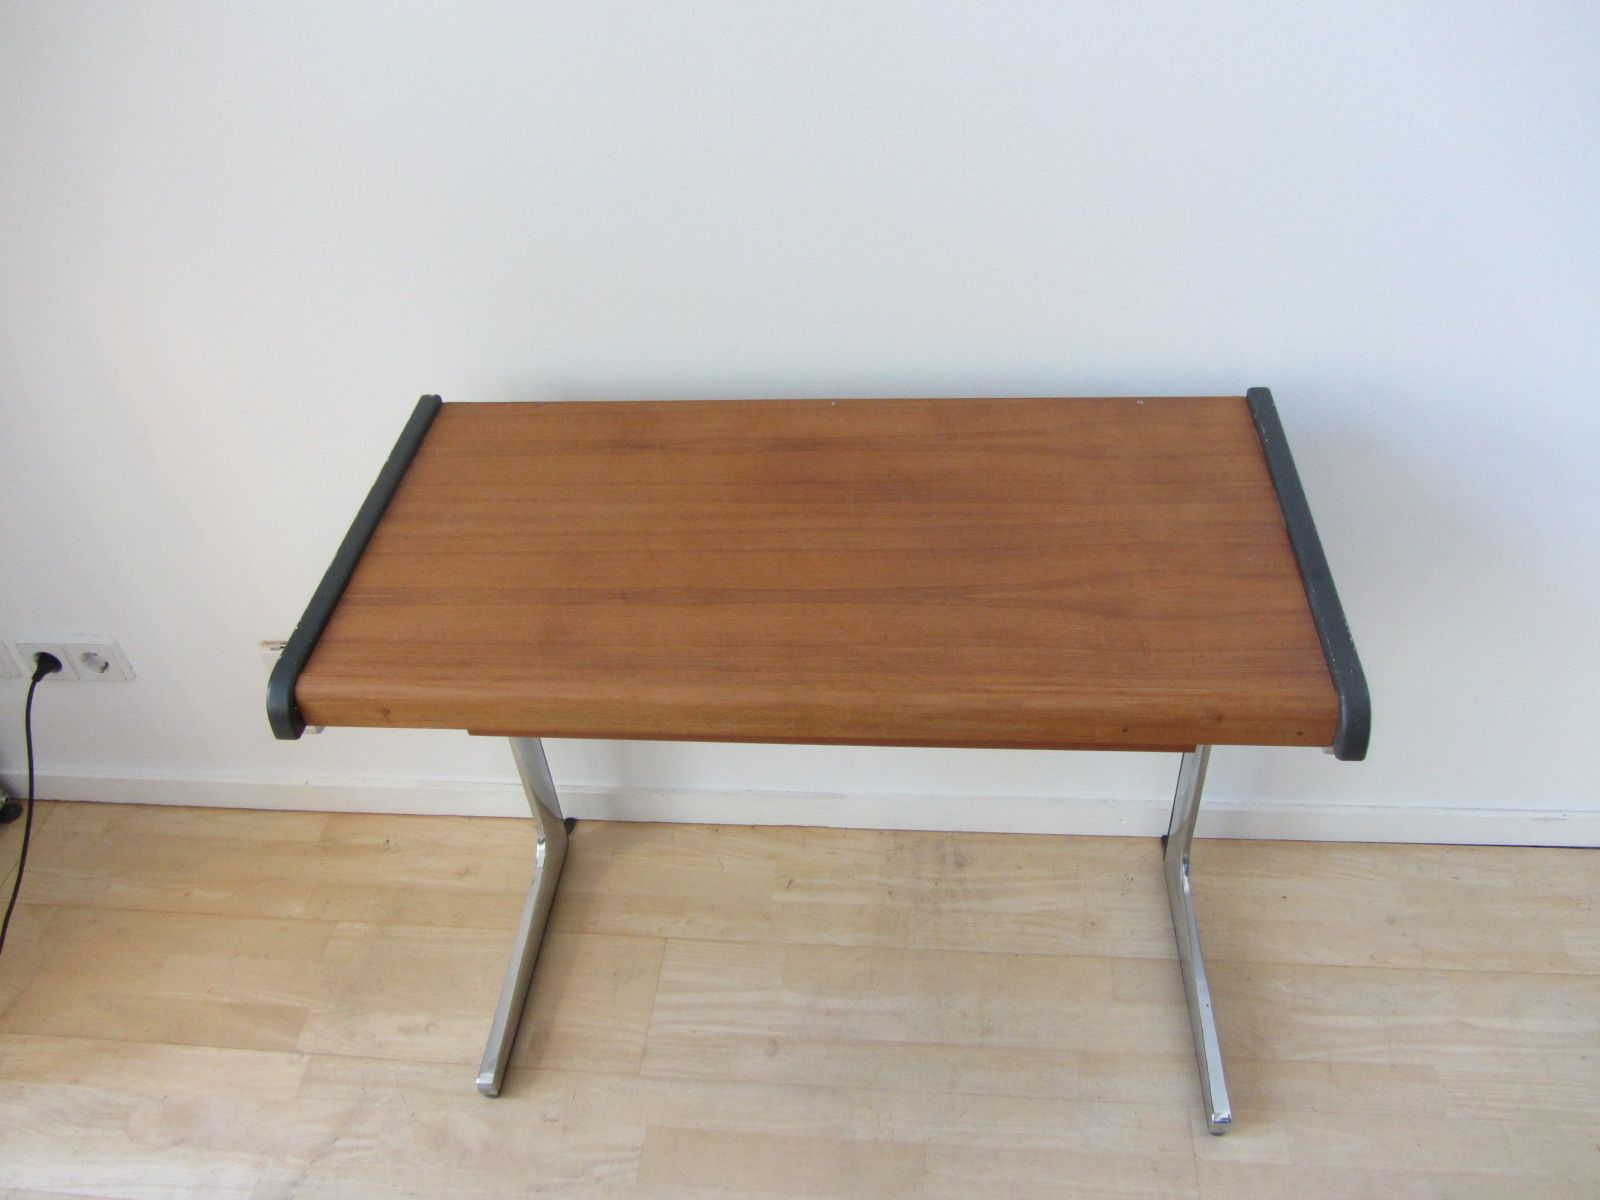 action office 1 small desk by george nelson robert probst for herman miller 1960s action office 1 desk